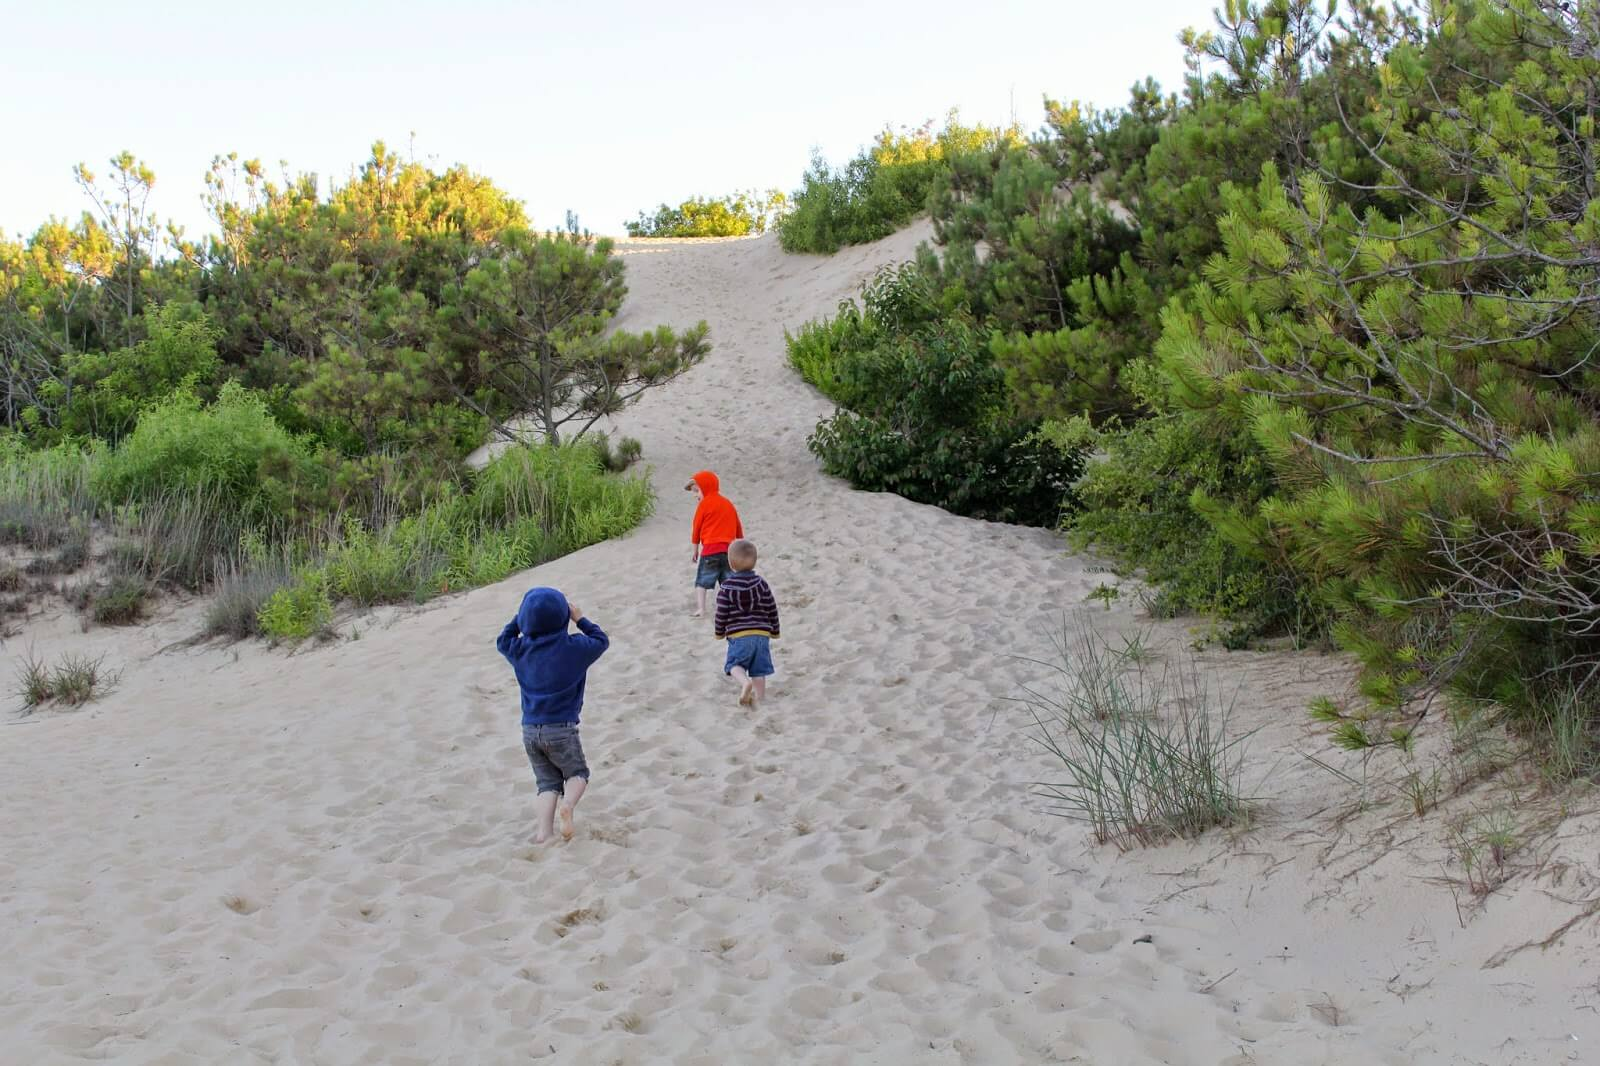 3 boys walking in sand